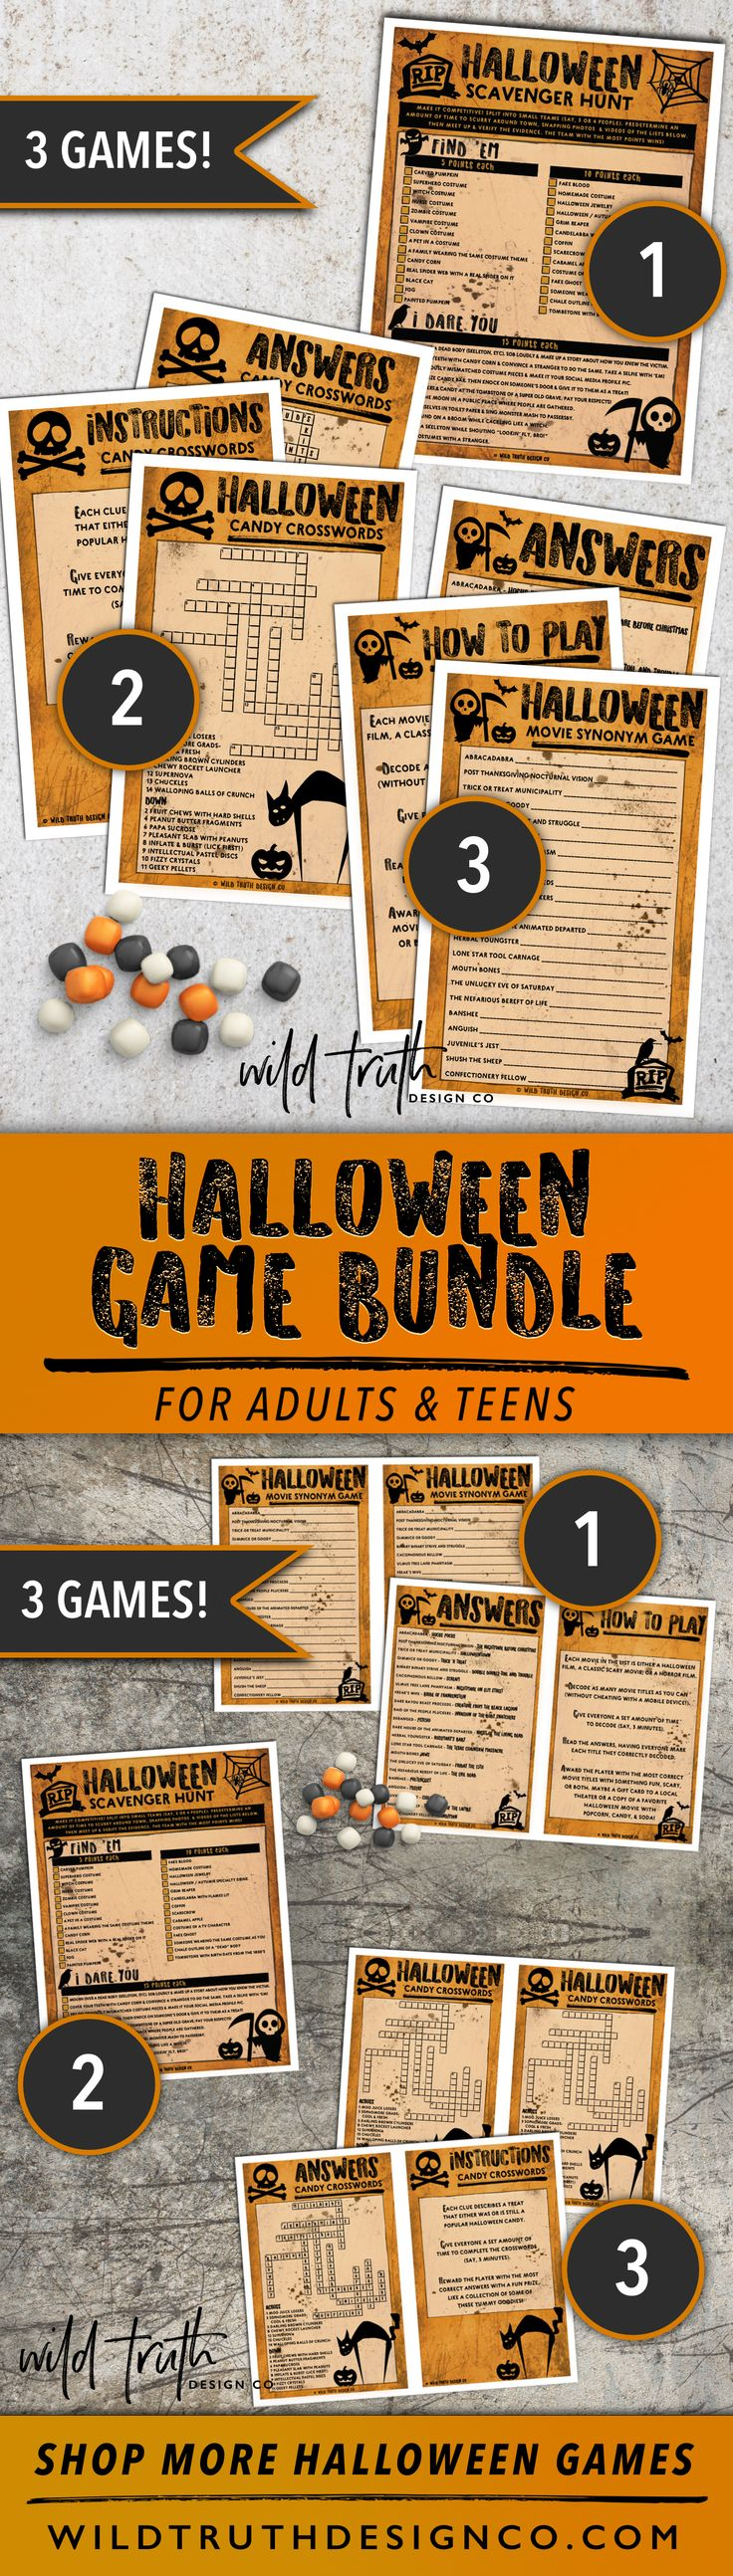 Printable halloween game bundle (Scavenger Hunt, Crosswords, Scary Movie Synonyms) - Halloween party fun for adults, kids, or families.